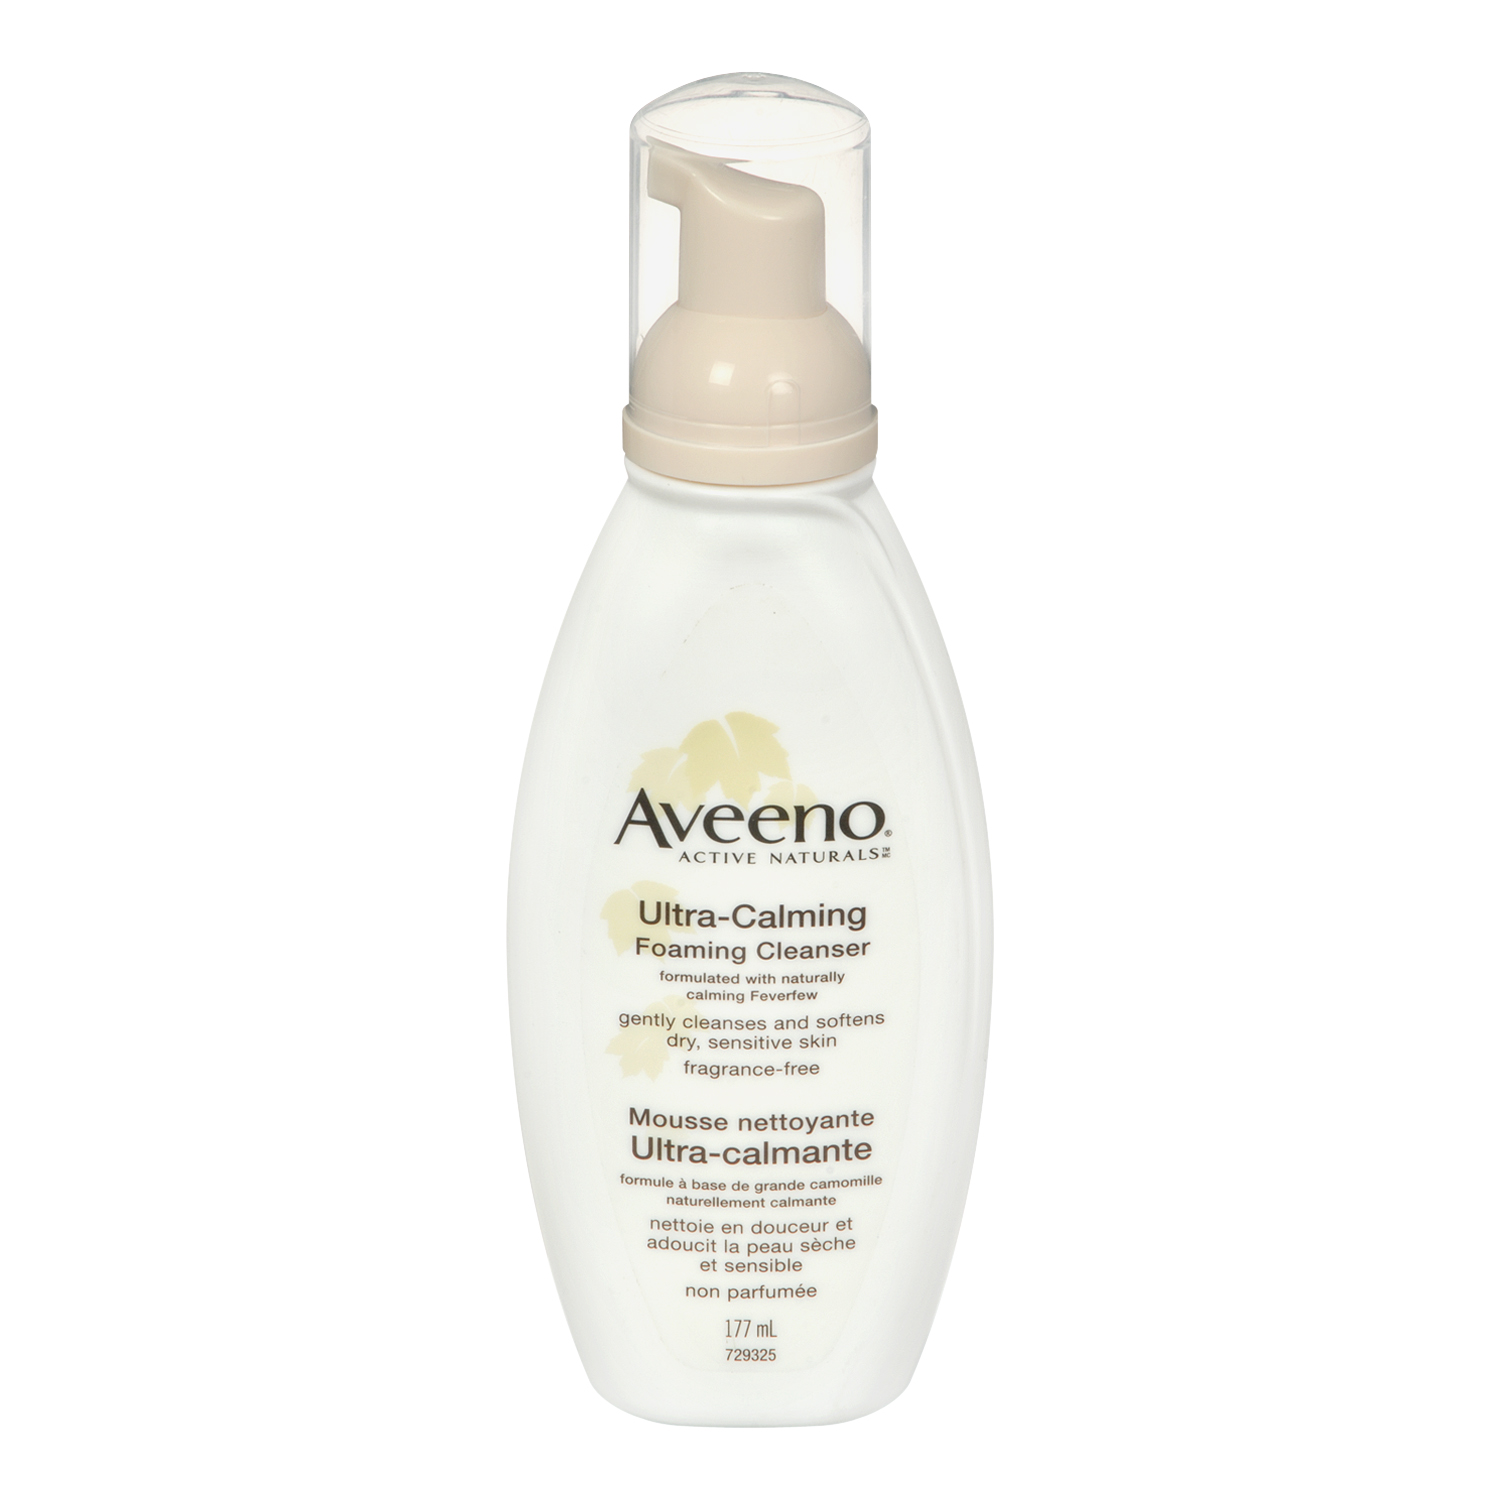 Aveeno Ultra-Calming Foaming Cleanser